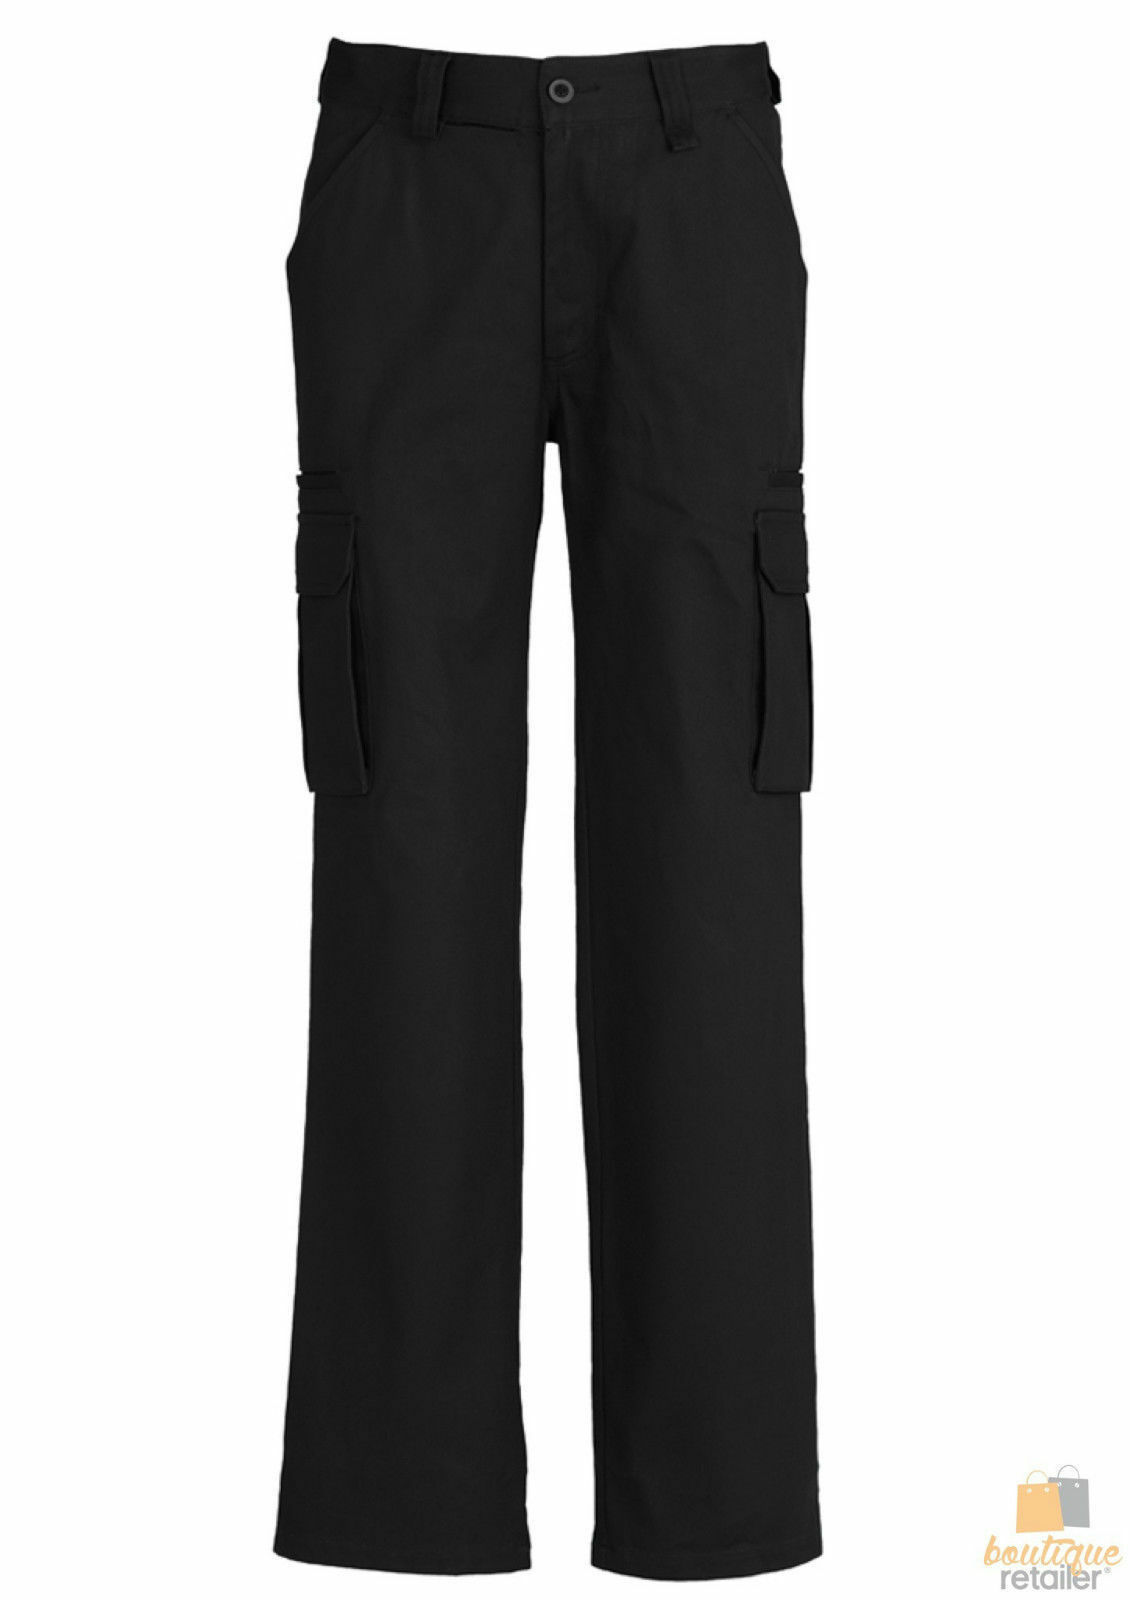 Mens-CARGO-PANTS-Work-Wear-Trousers-100-COTTON-Tradie-Pockets-Military-310gsm thumbnail 4